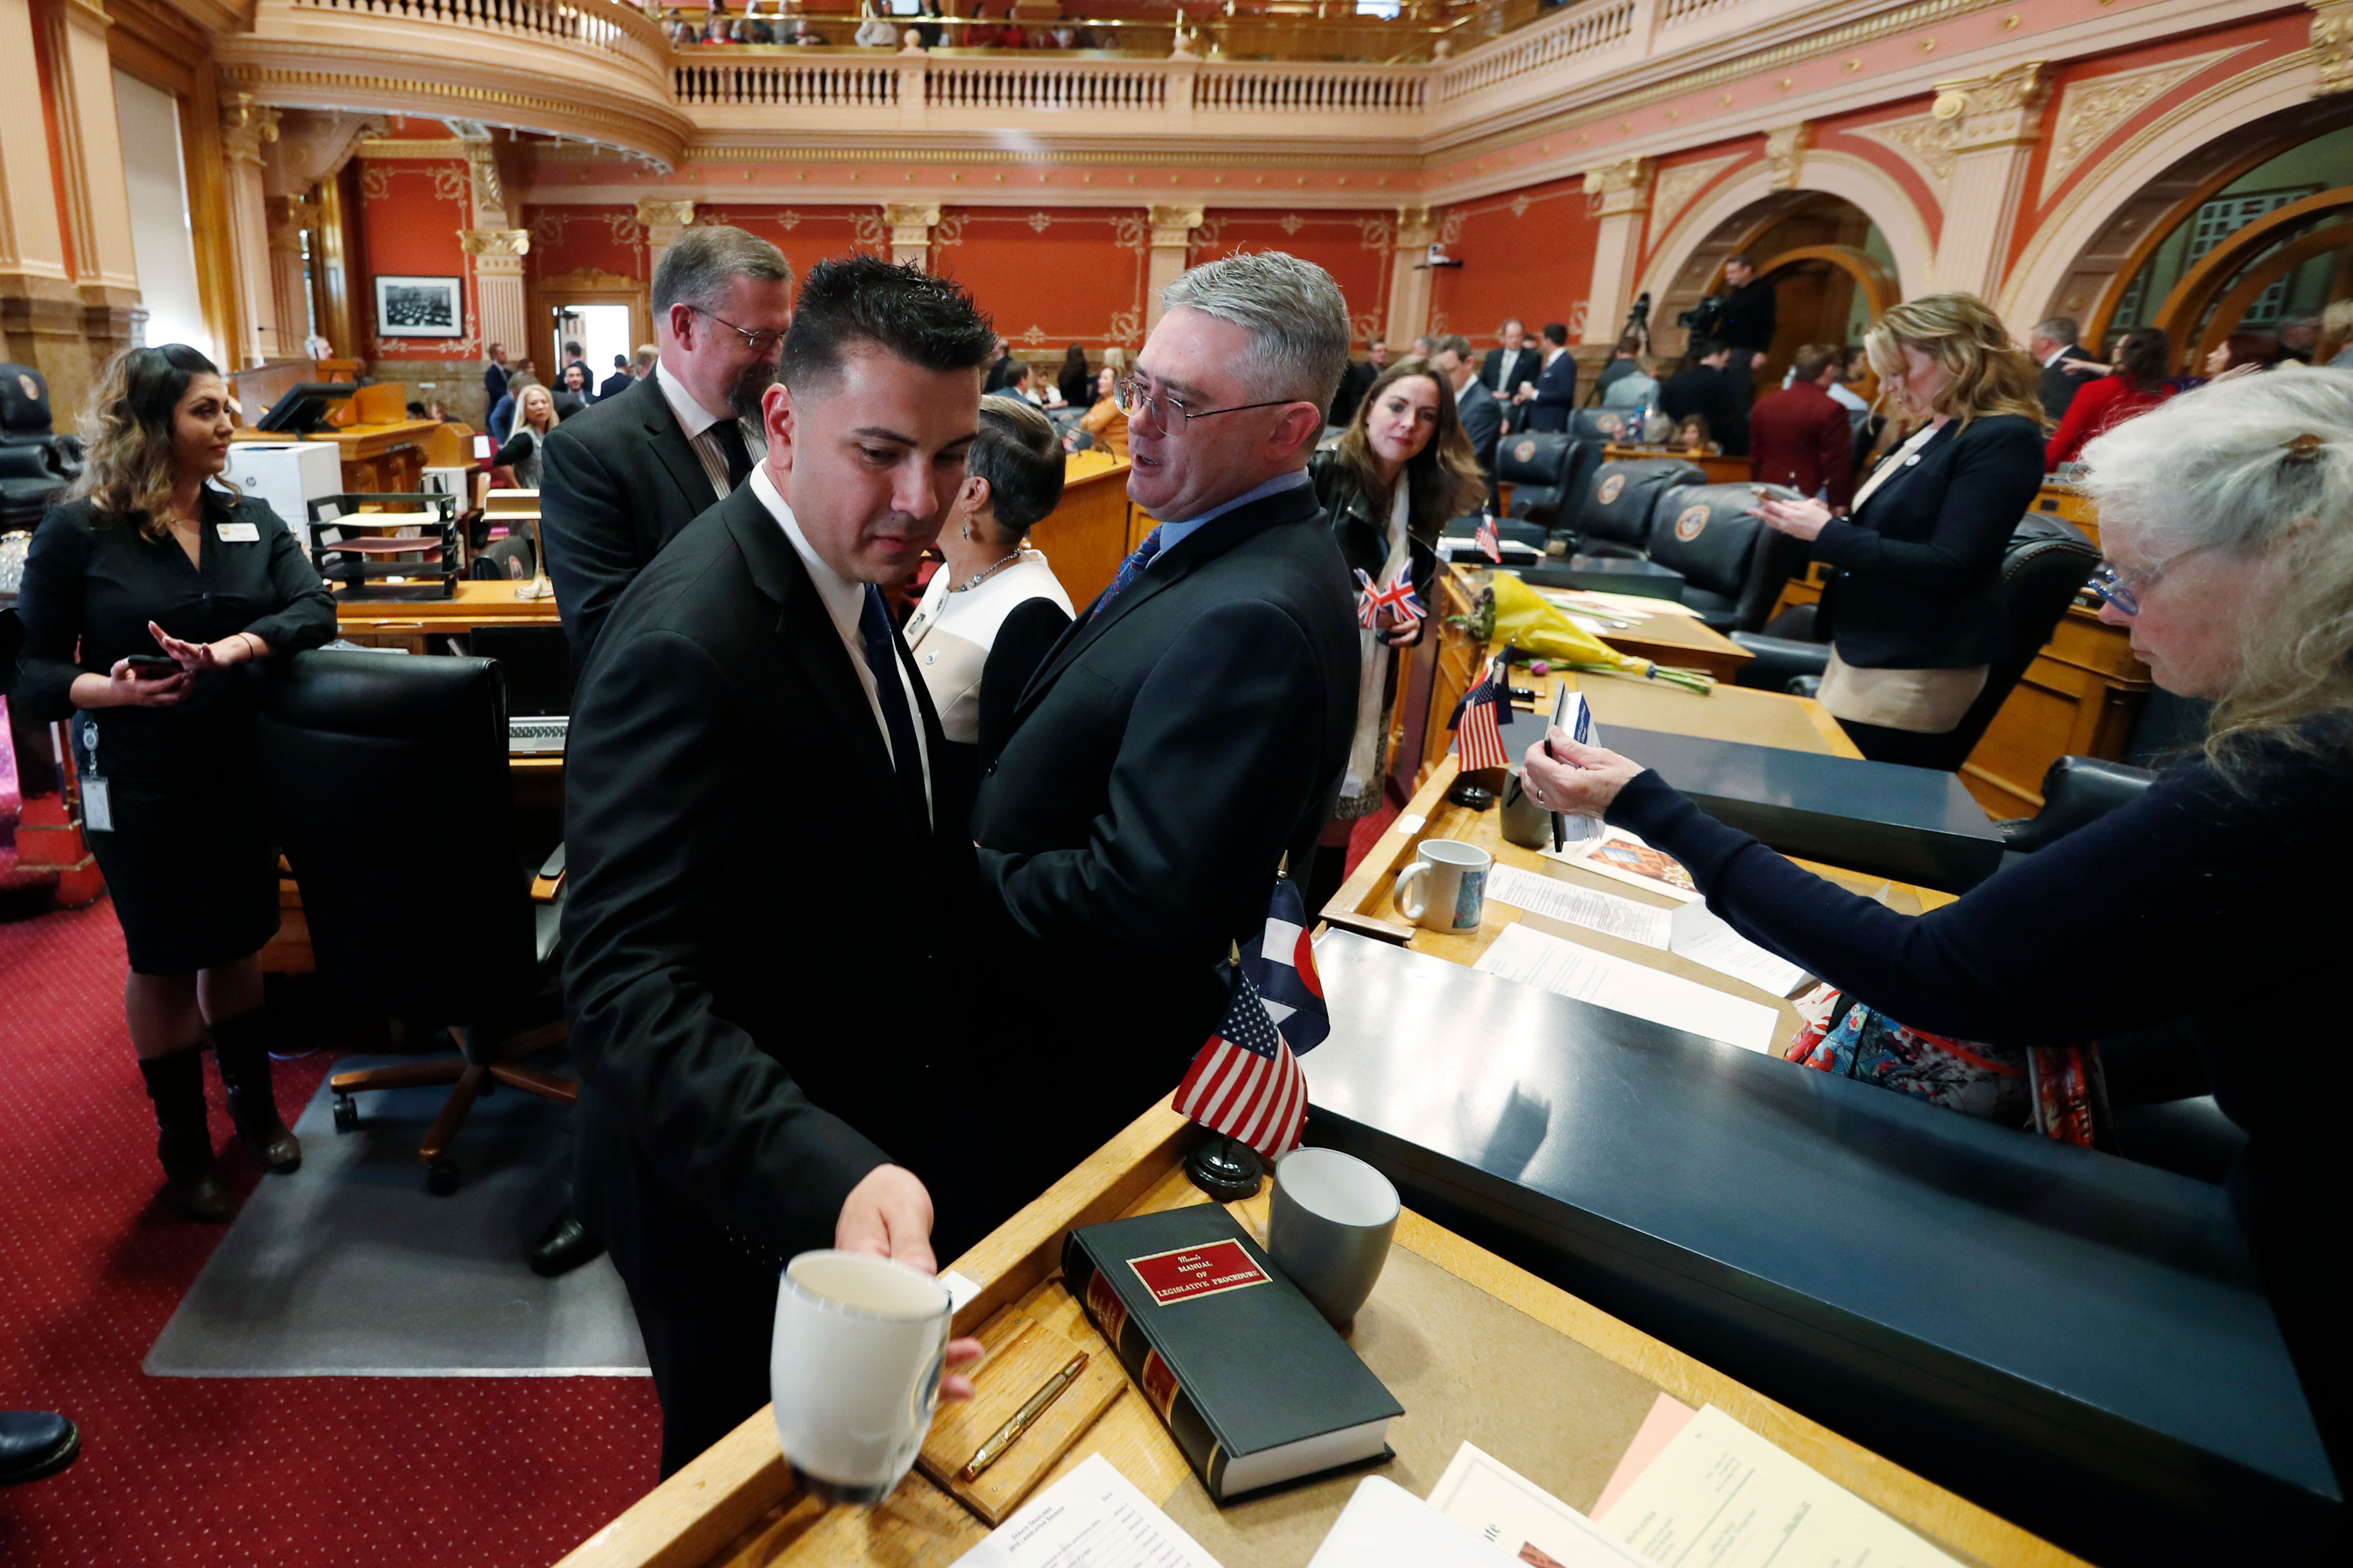 Colorado Senate President Leroy Garcia, D-Pueblo, left, confers with state Sen. Chris Holbert, R-Castle Rock, in the Senate chamber in the State Capitol, Friday, Jan. 4, 2019, in Denver.